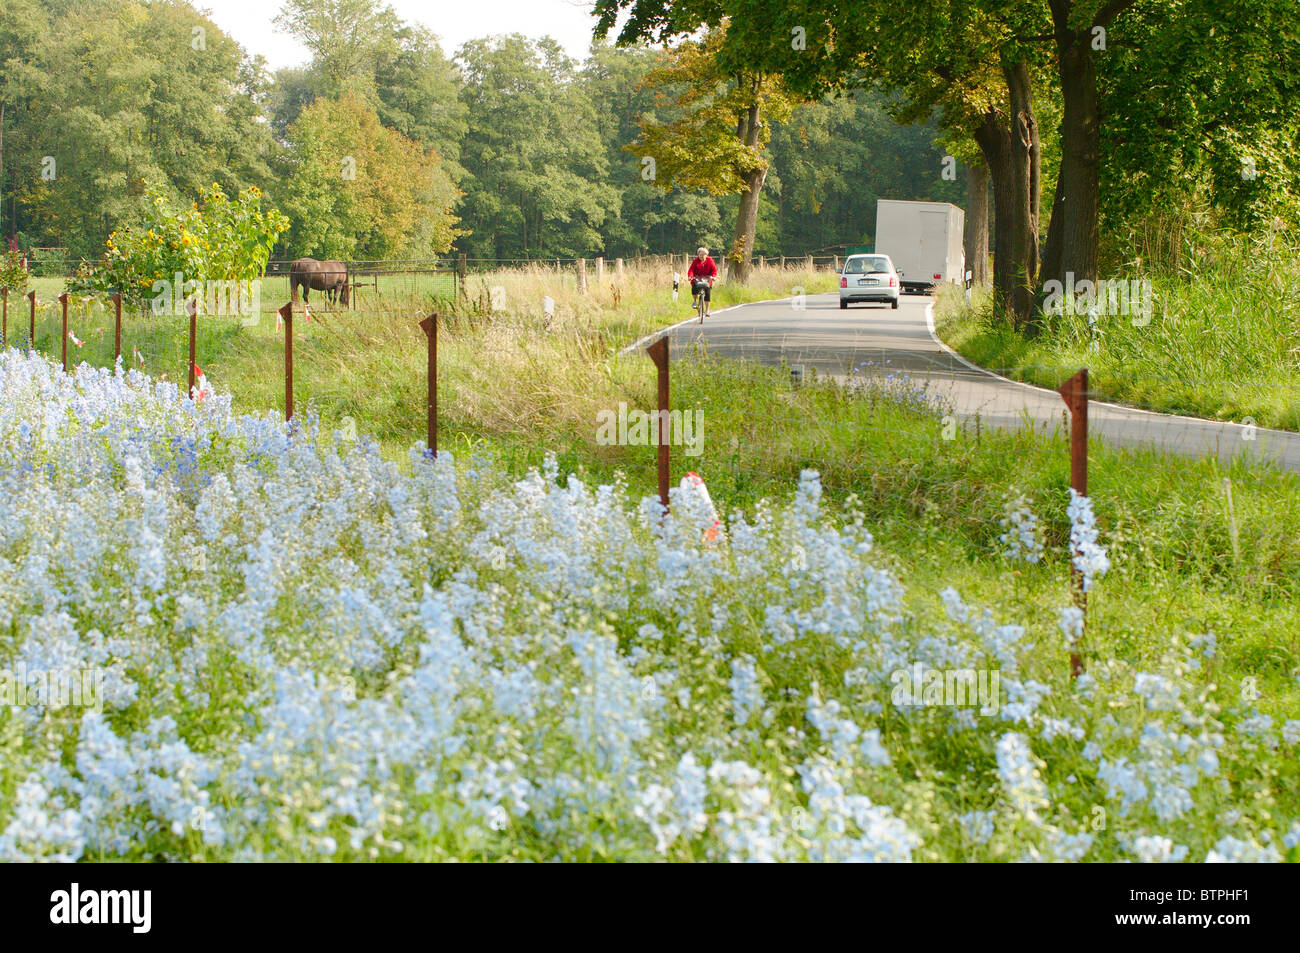 Germany, Potsdam, Grube, Wildflowers growing on roadside - Stock Image